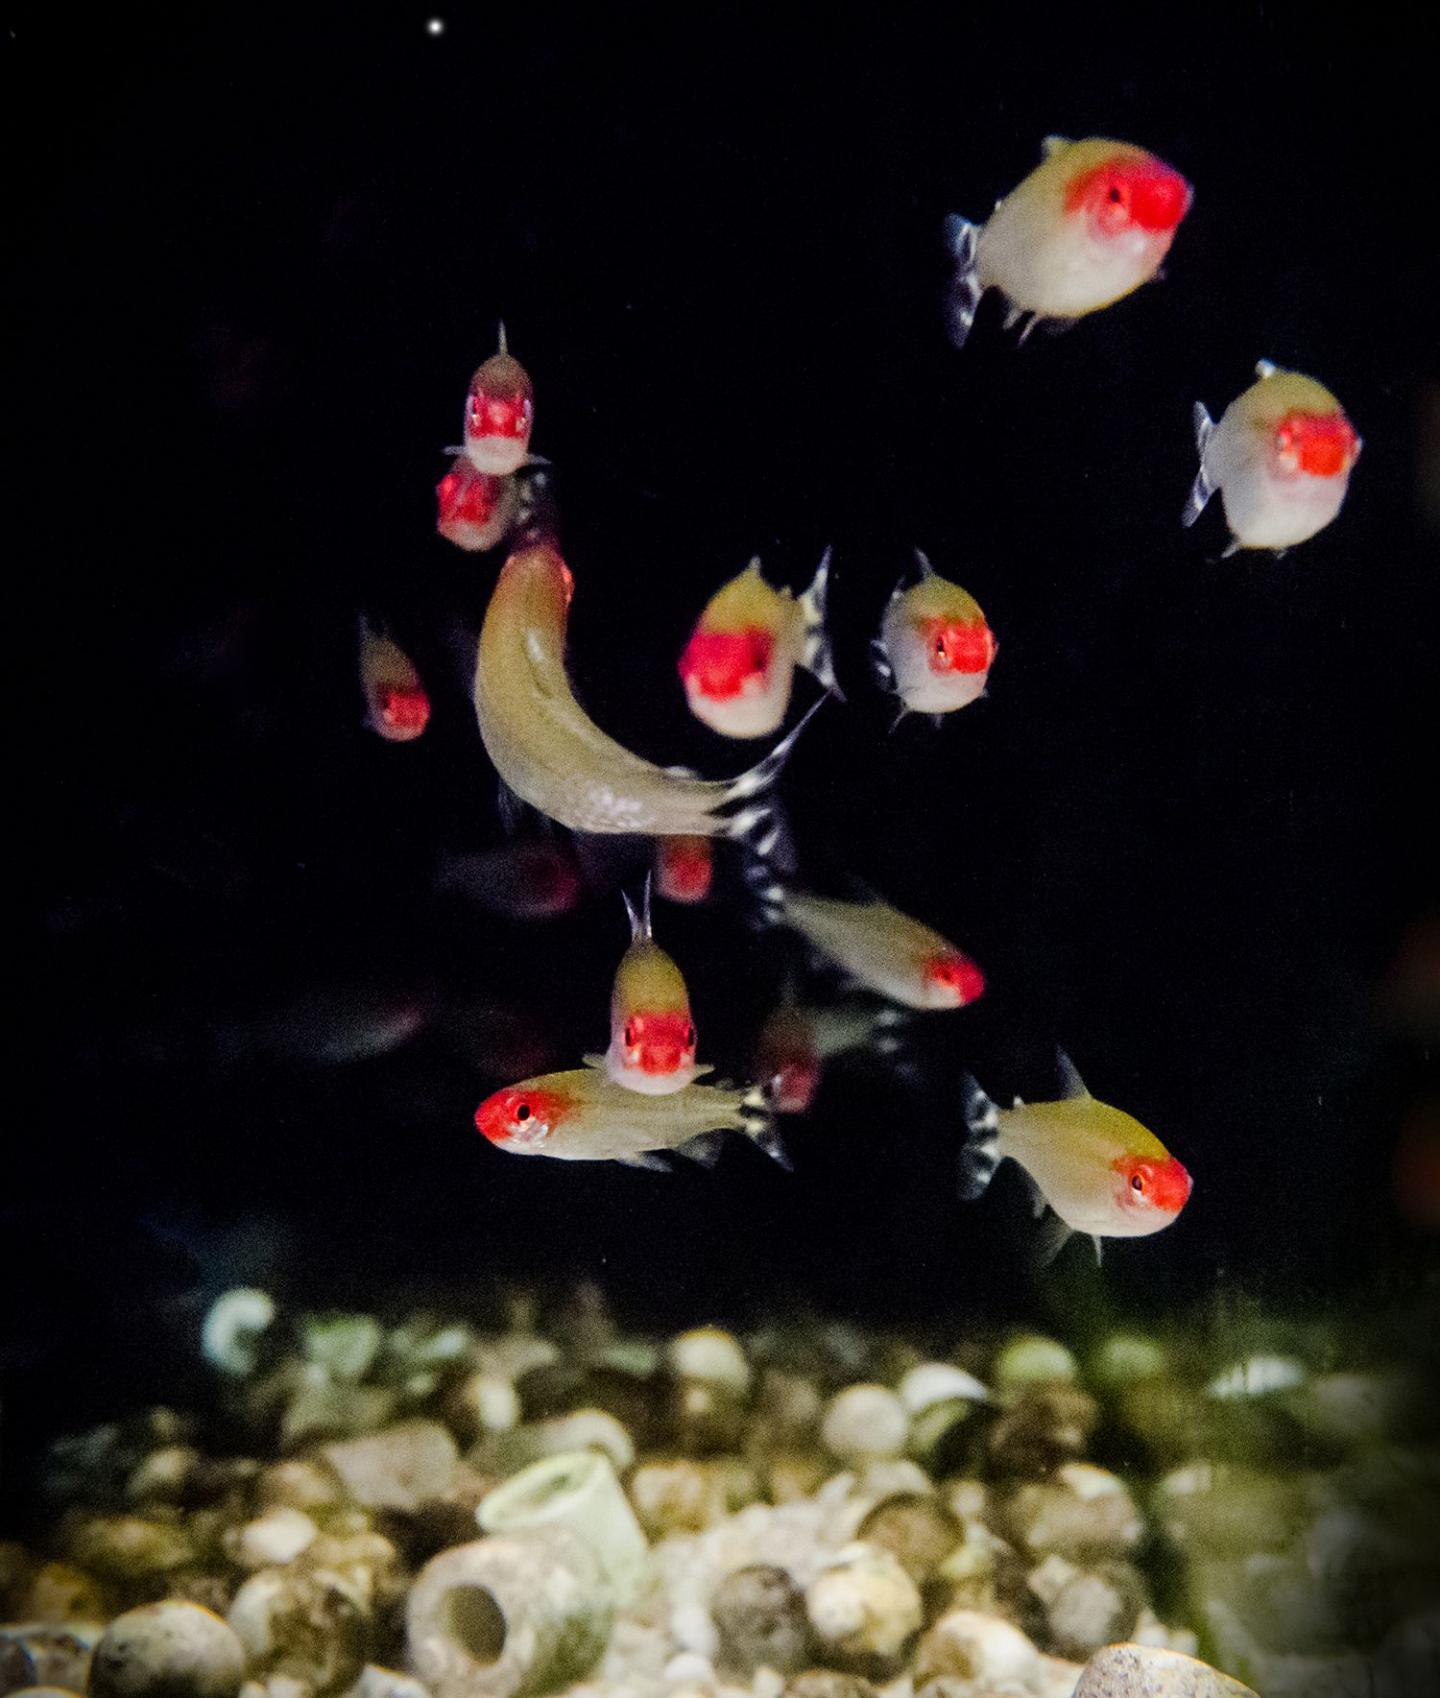 Fish Switch Attention from Neighbor to Neighbor for Seamless Collective Movement